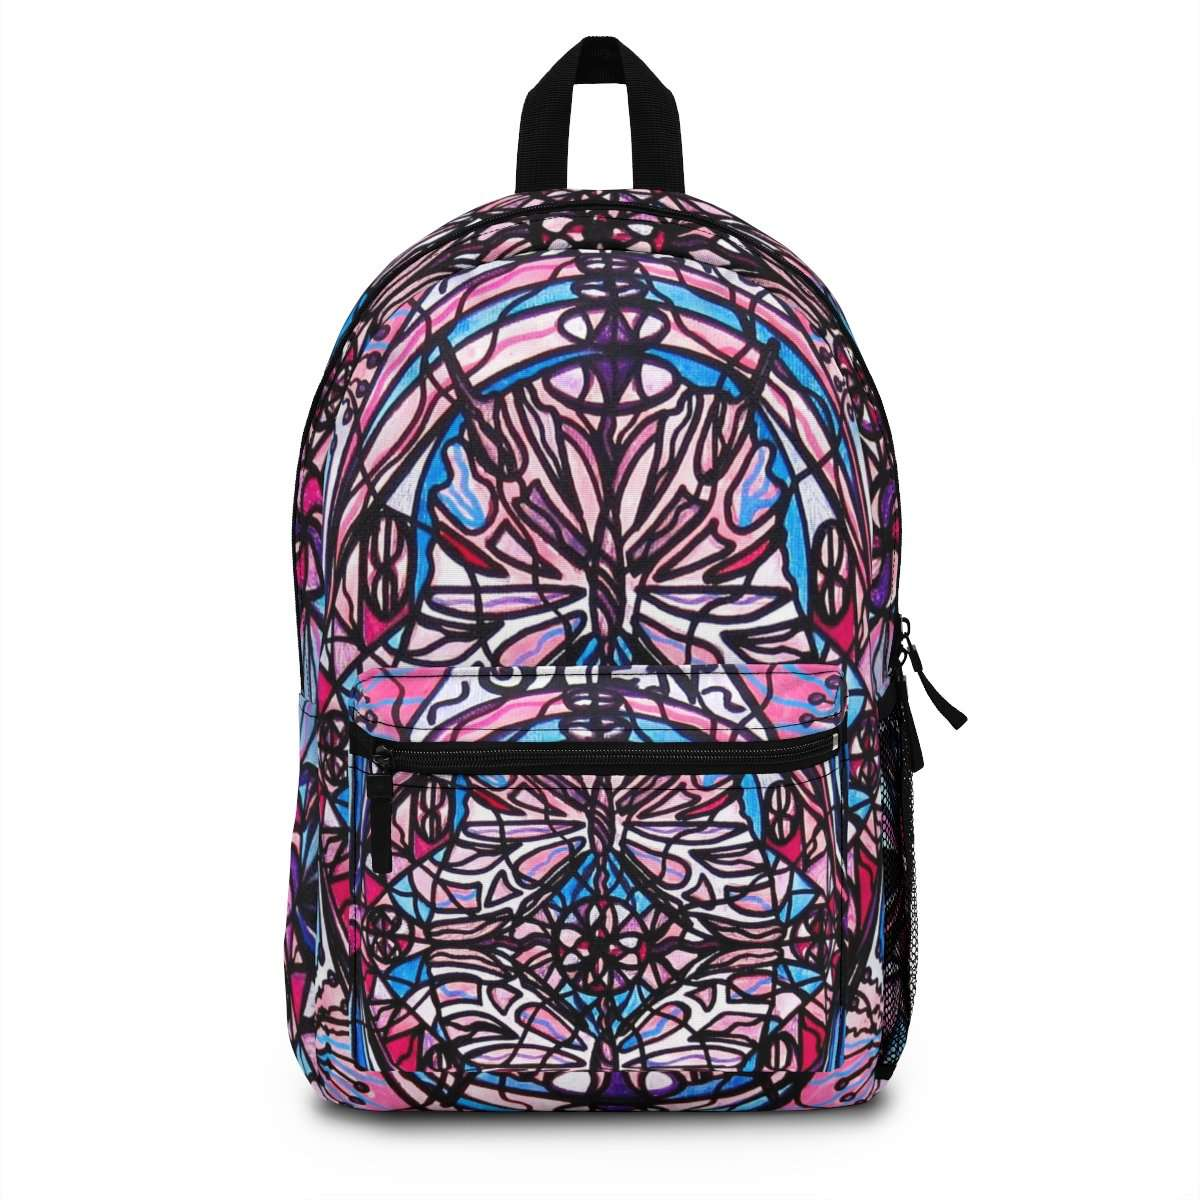 Conceive - AOP Backpack